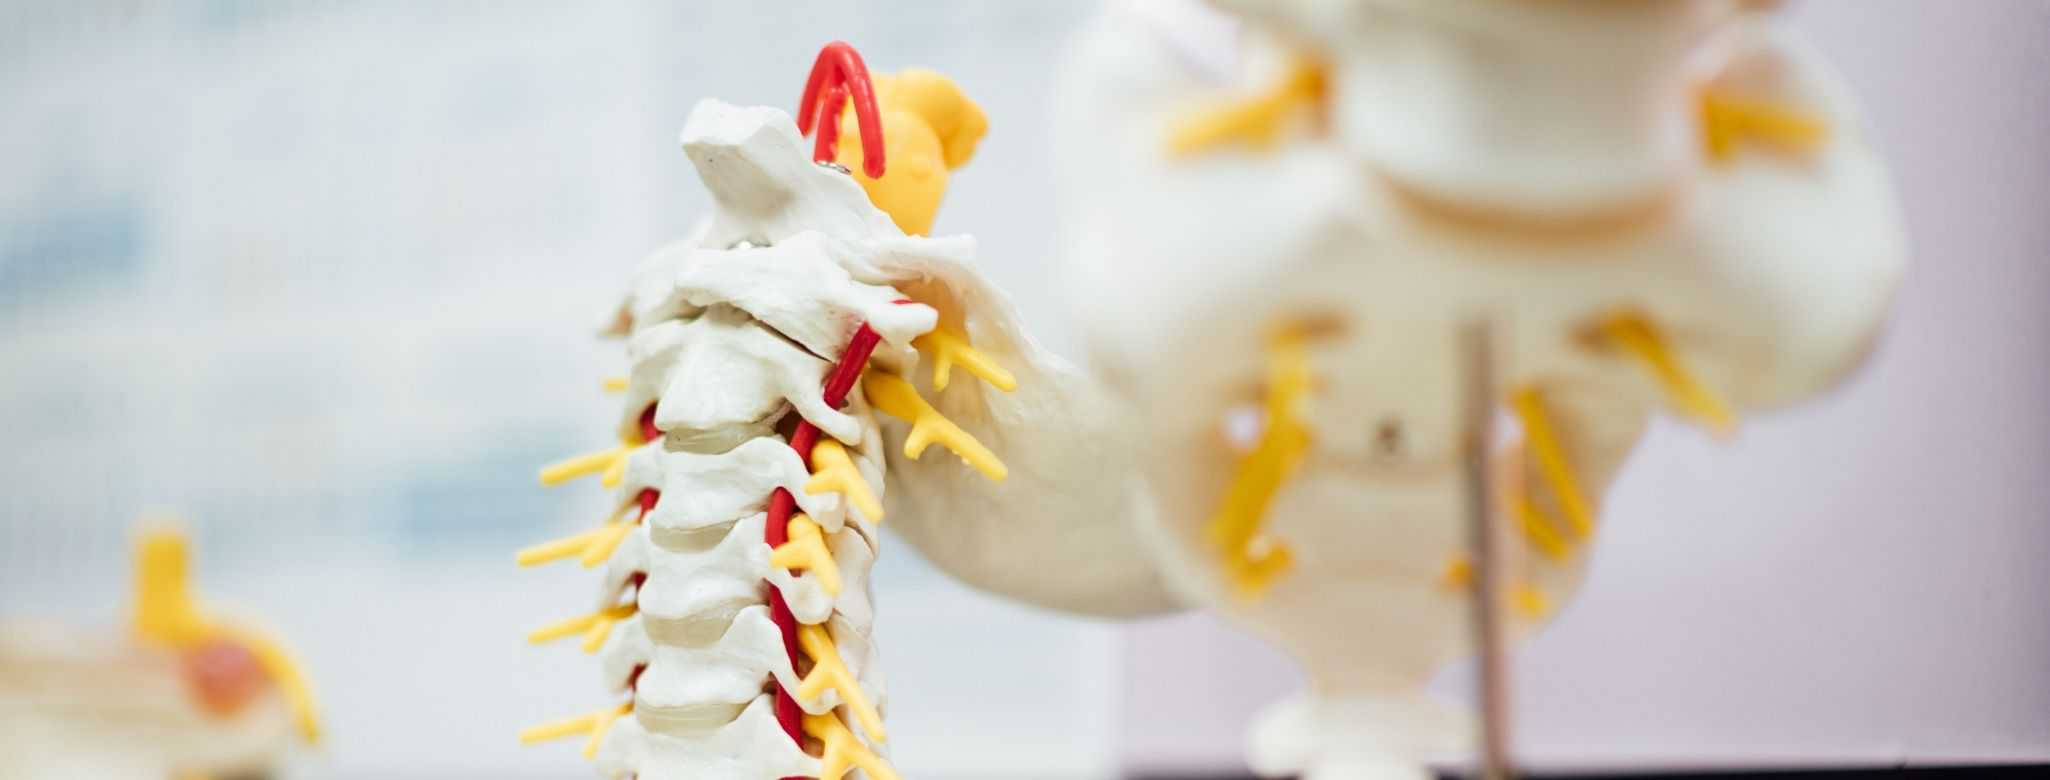 3 Things To Keep In Mind when Choosing a Chiropractor